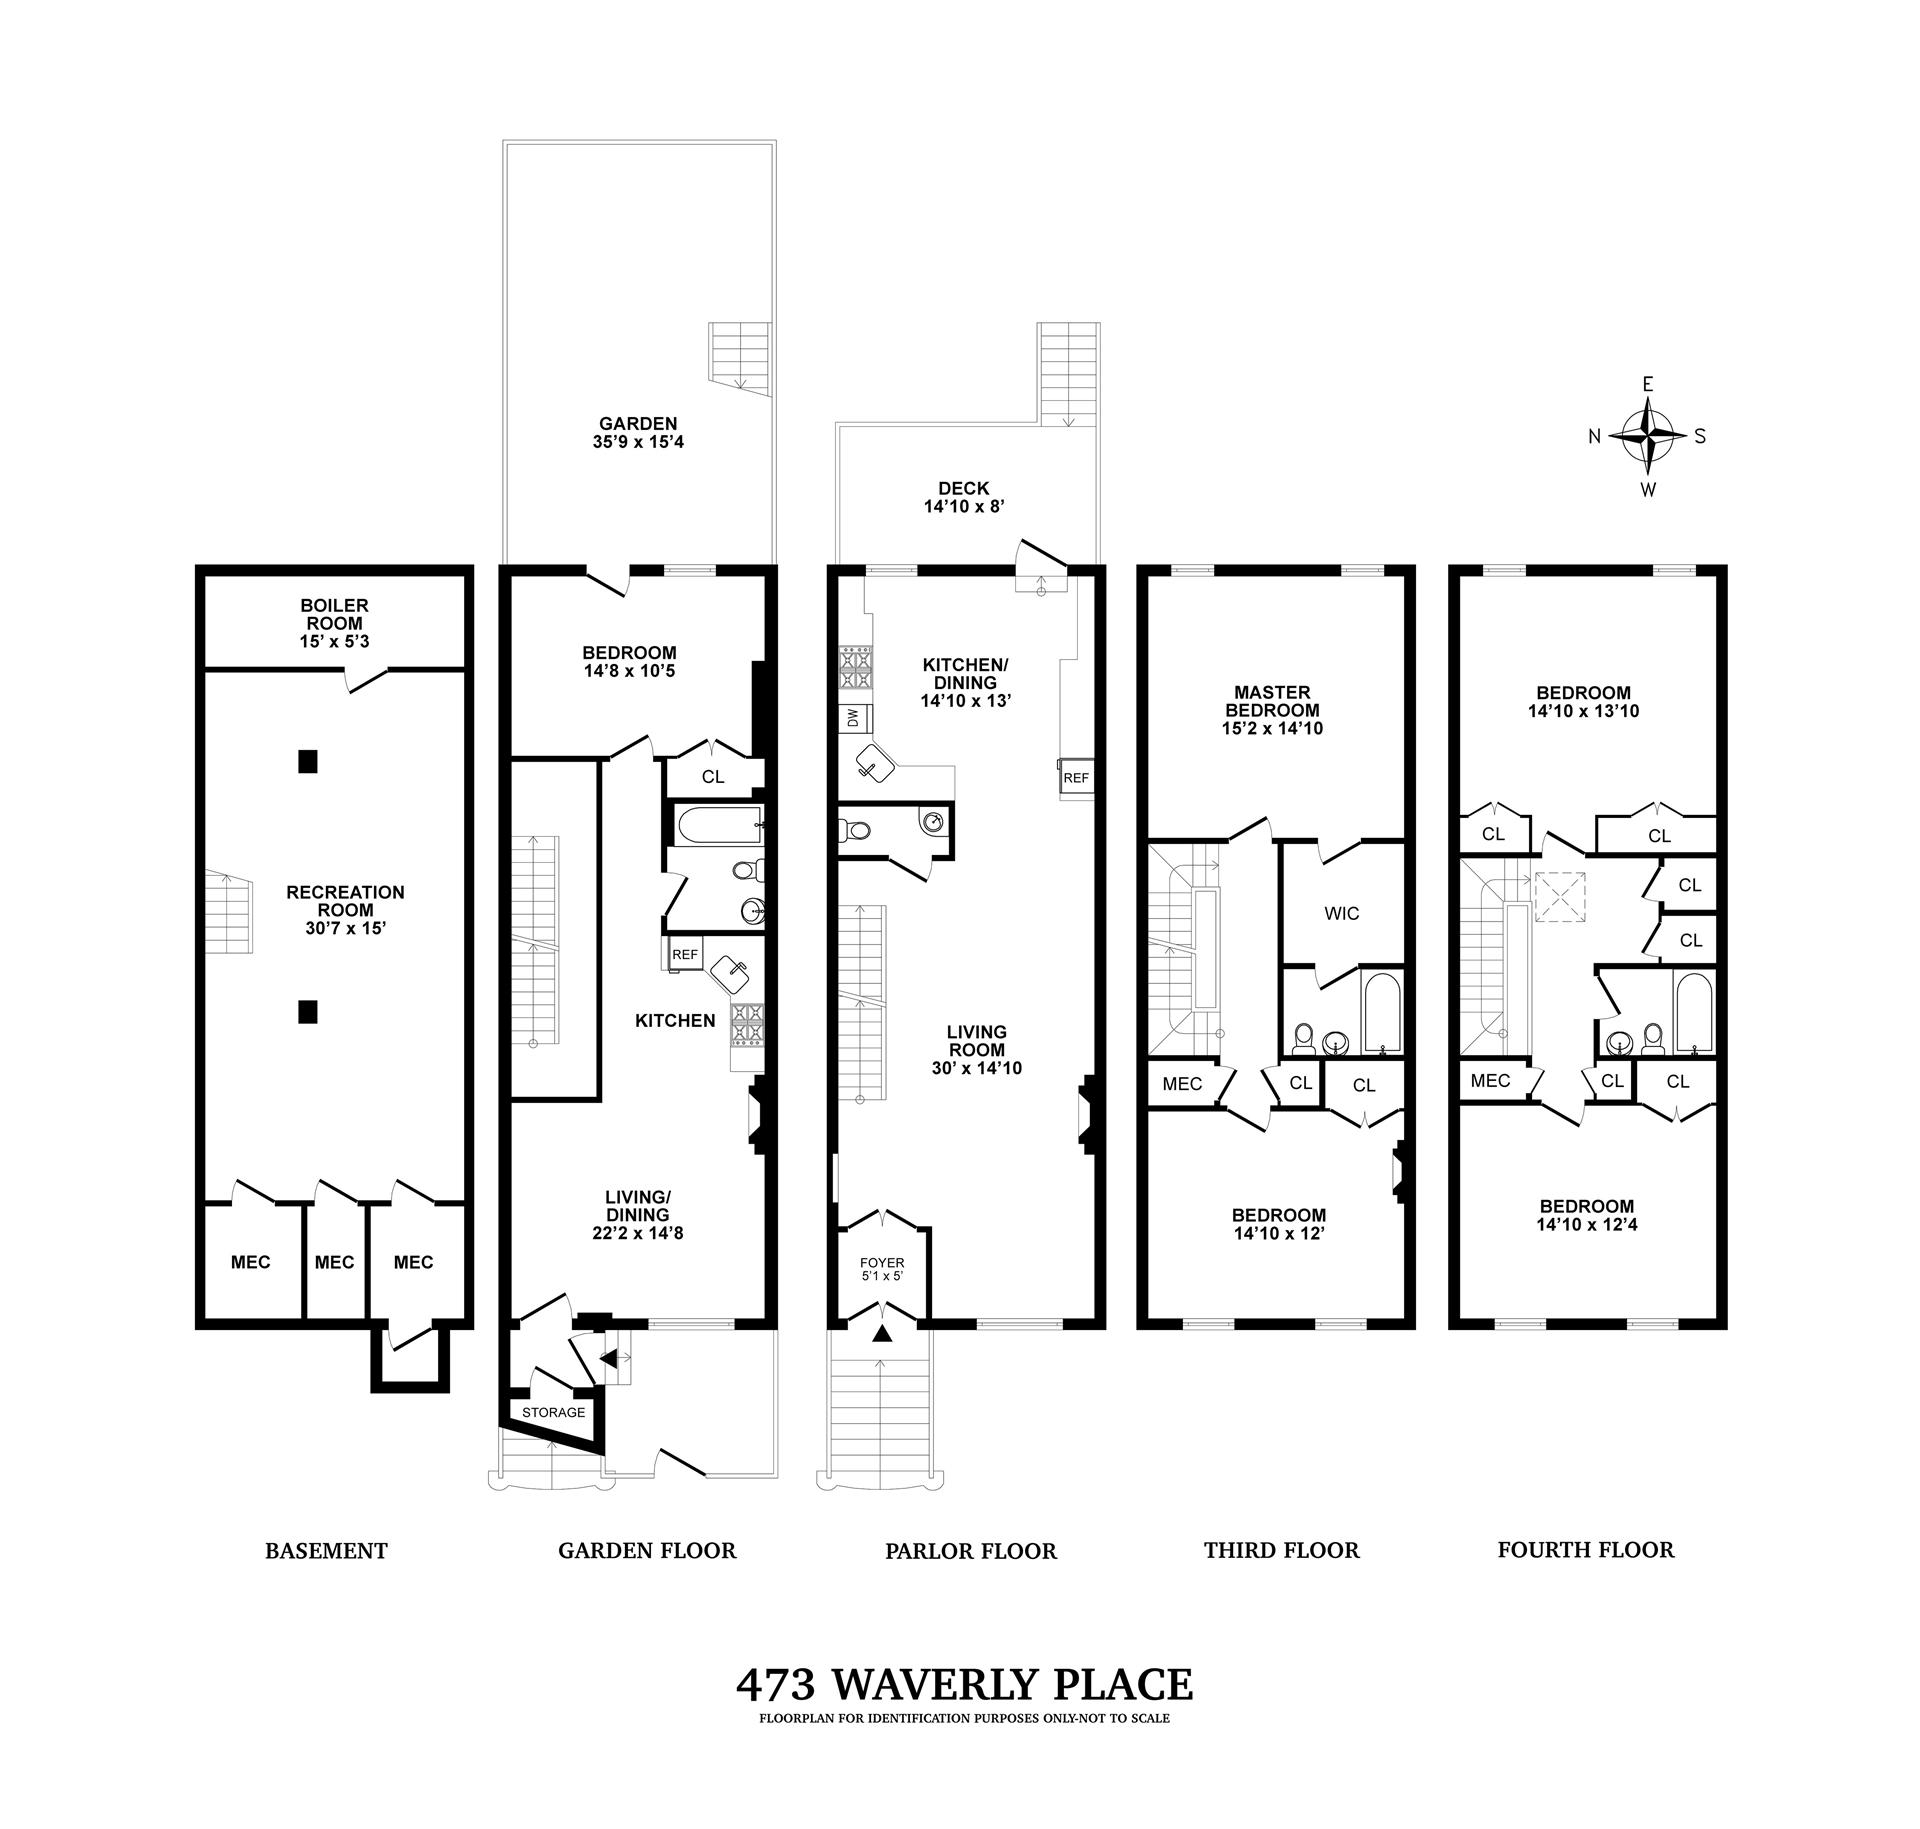 Floor plan of 473 Waverly Avenue - Clinton Hill, New York